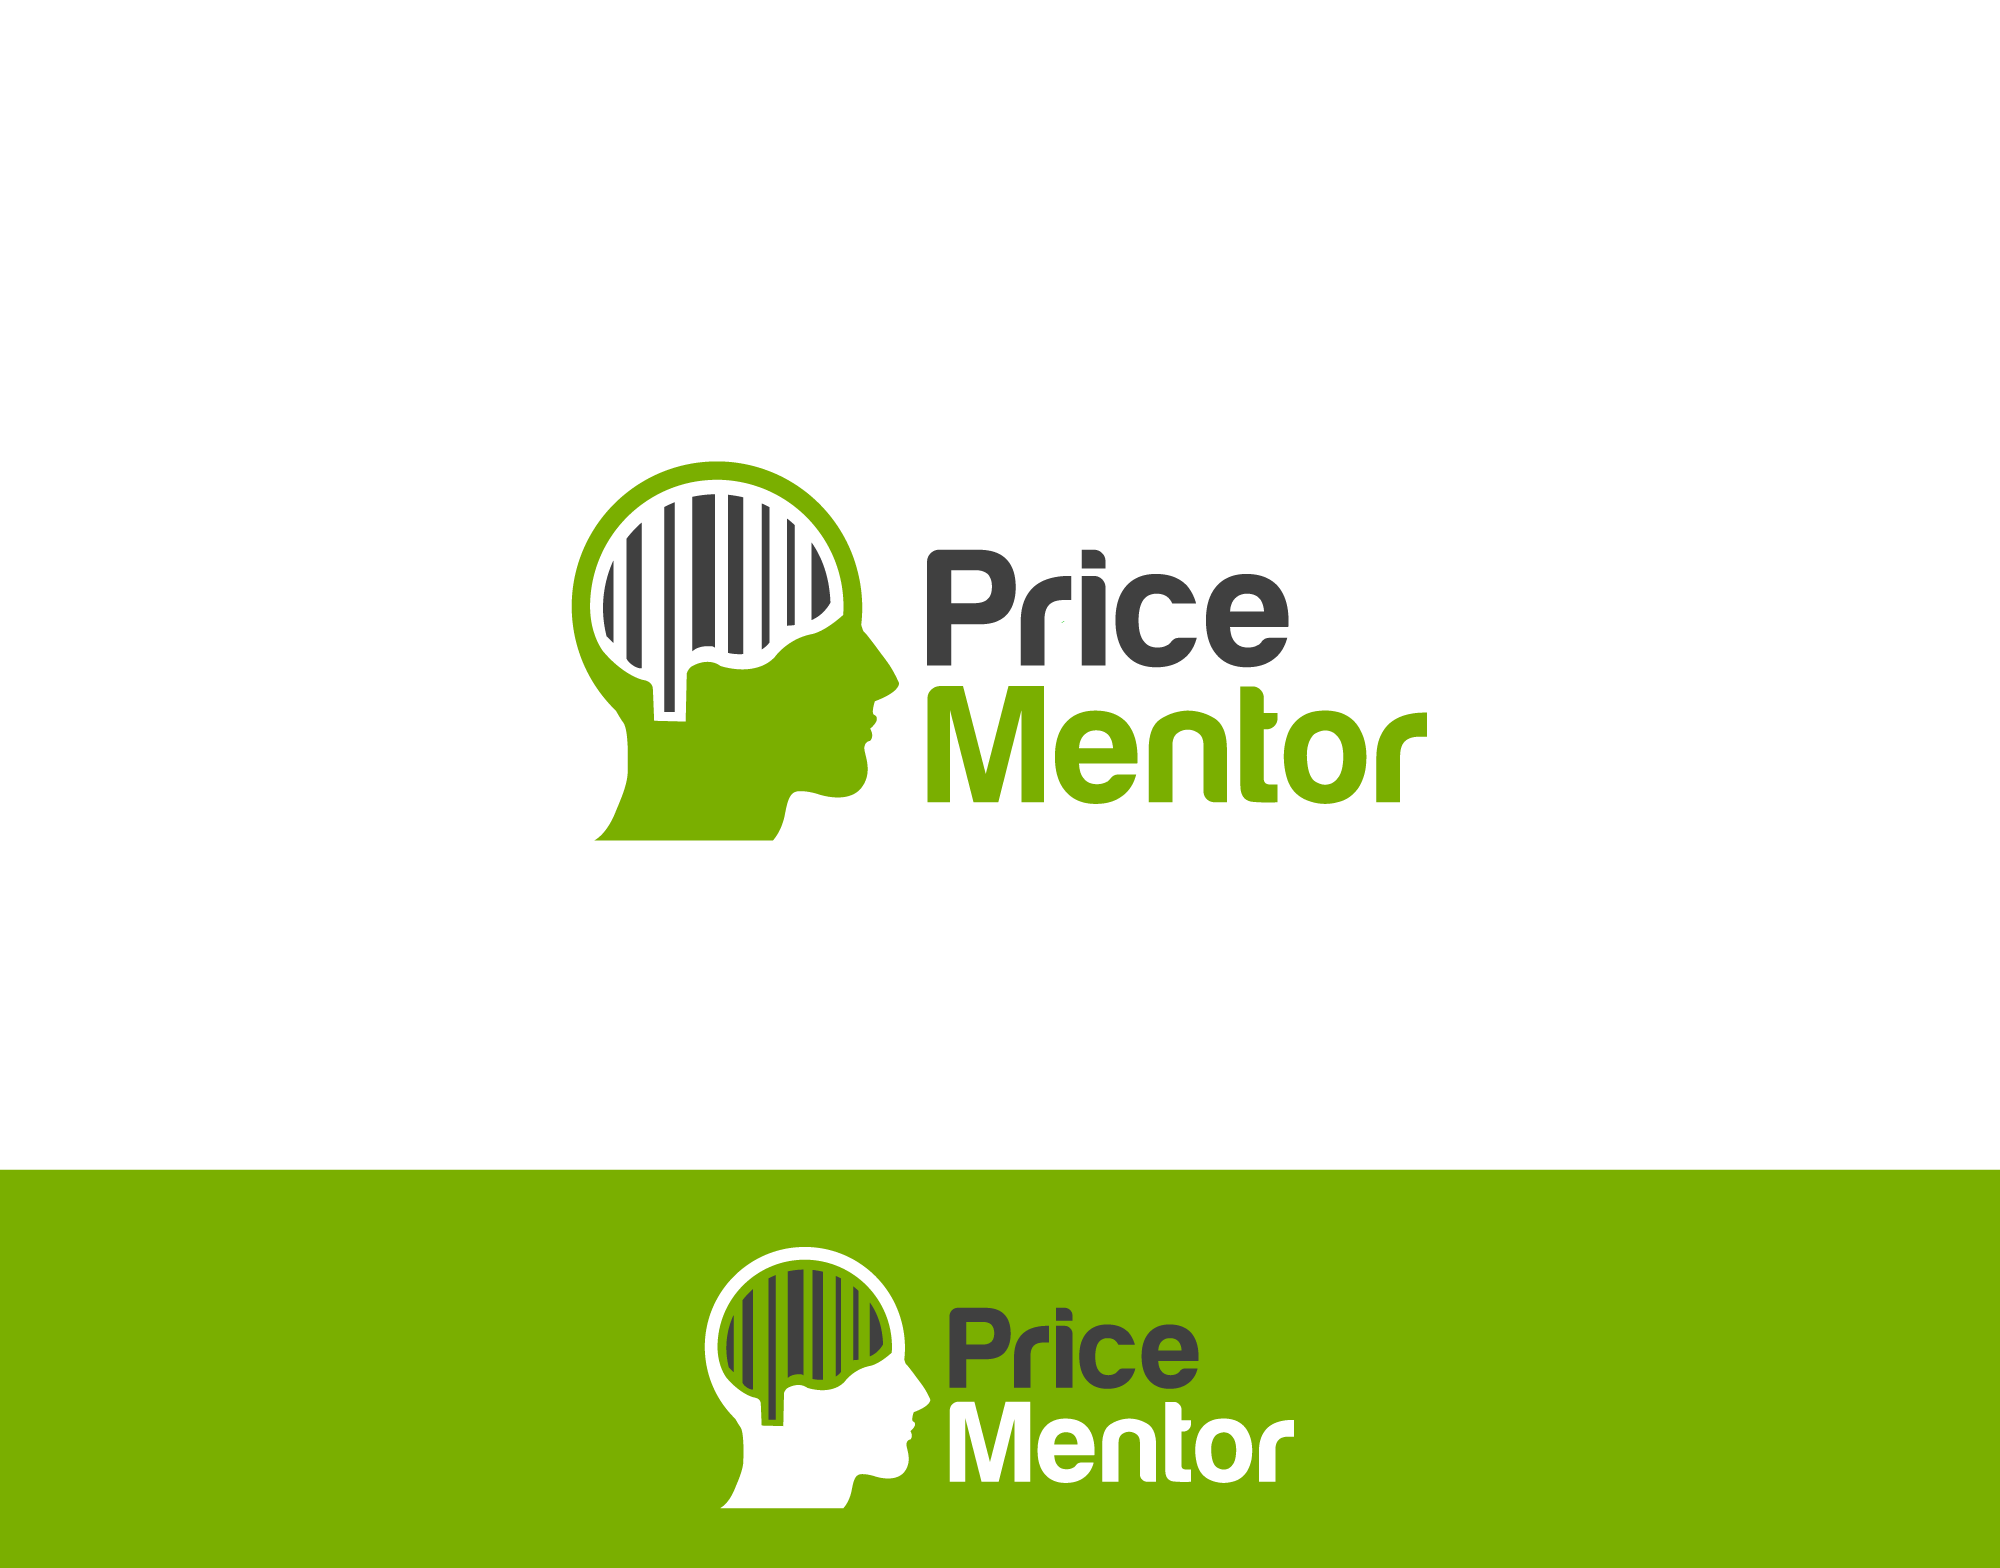 New logo wanted for PriceMentor